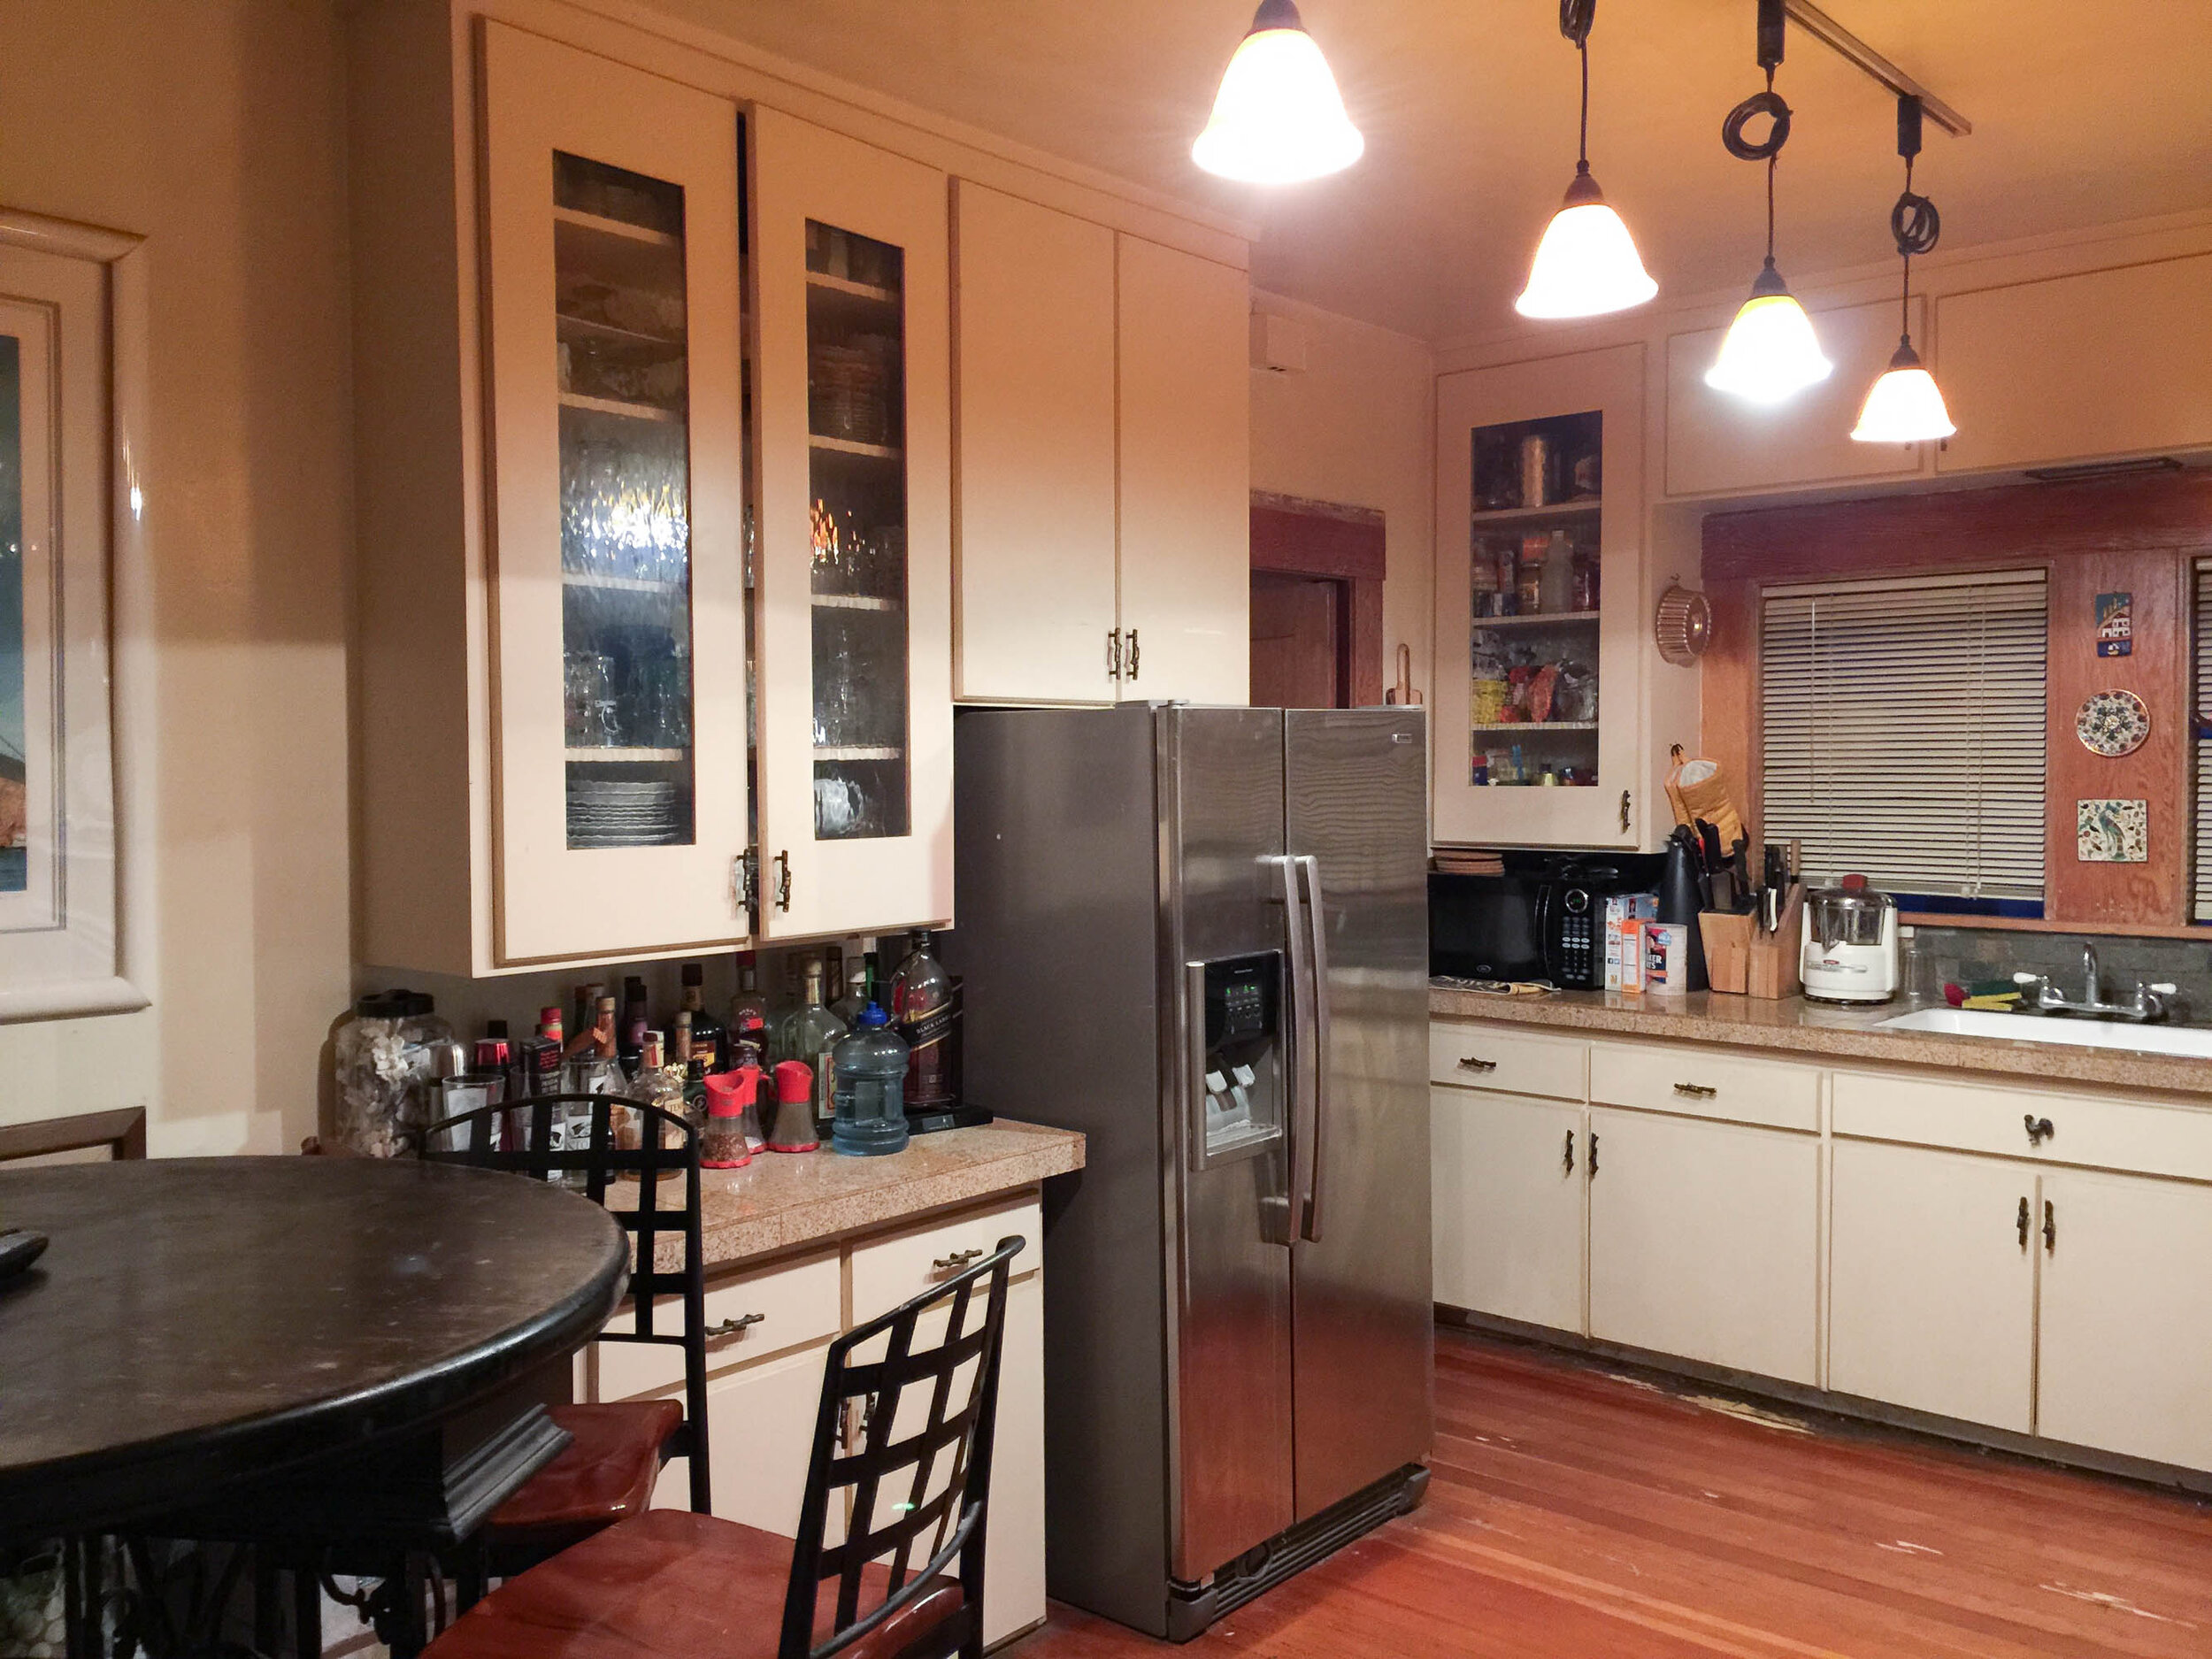 The Gold Hive $600 Kitchen Makeover Craftsman Bungalow Retro Style-8134.jpg